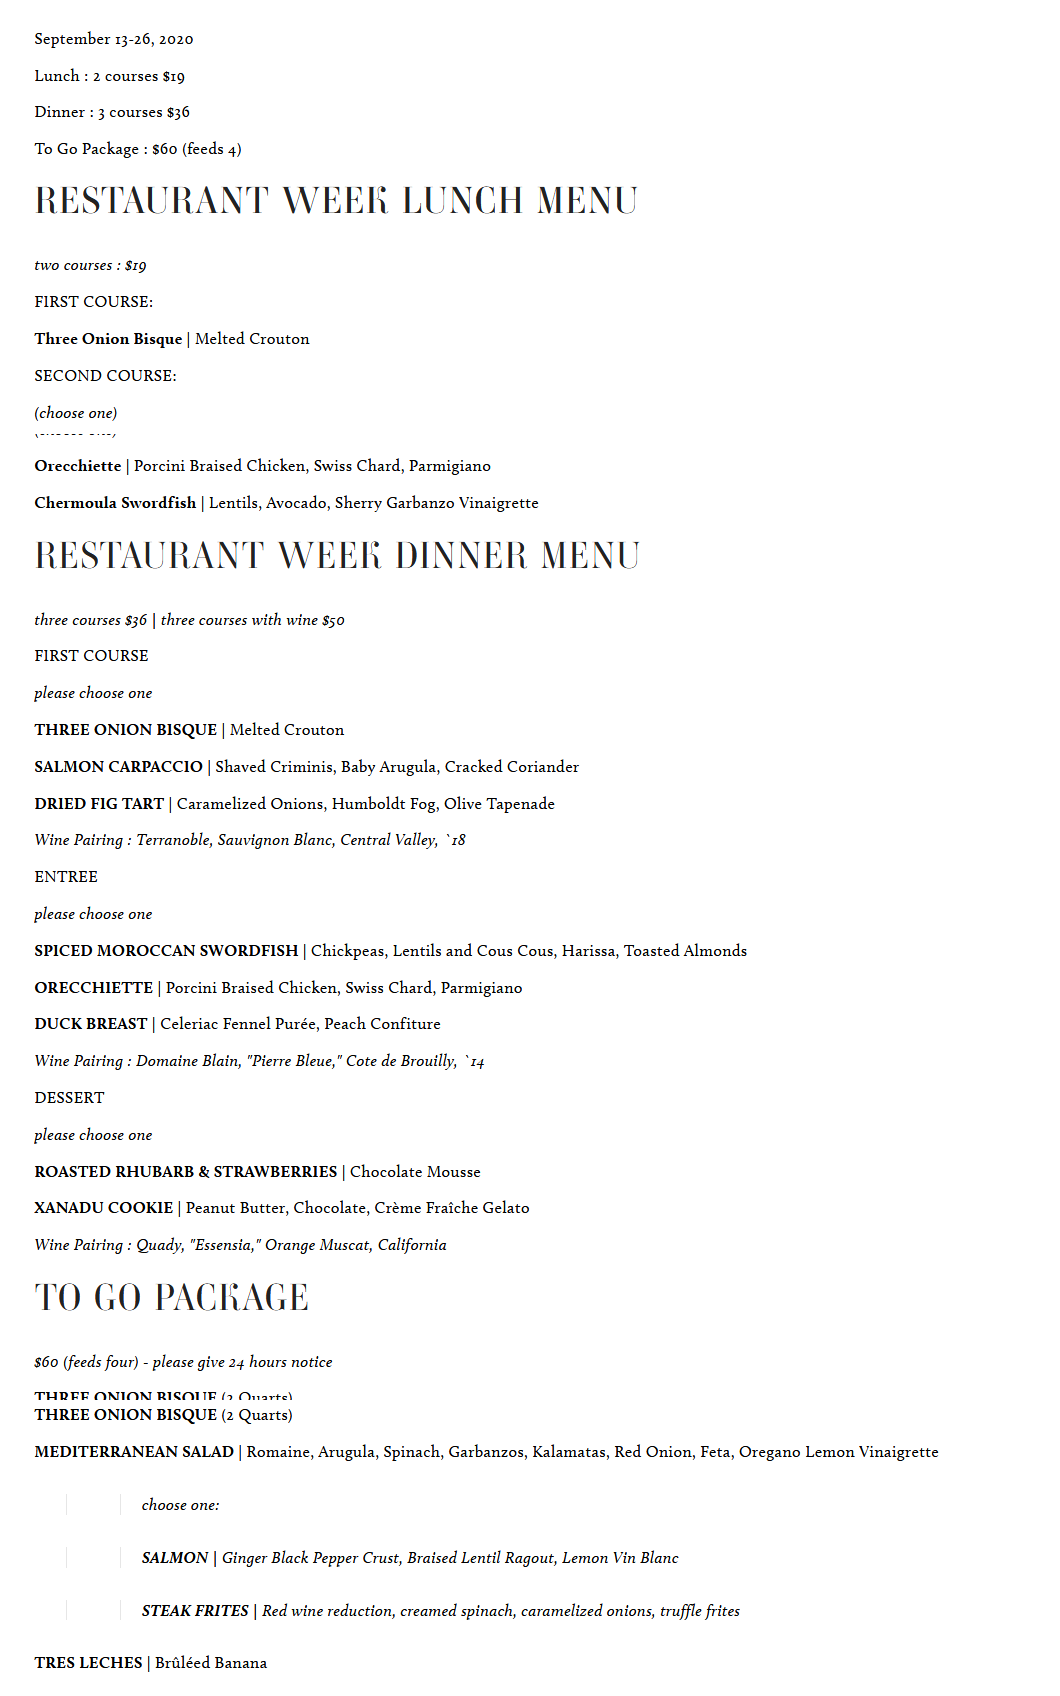 Shell and Bones Restaurant Week Menu